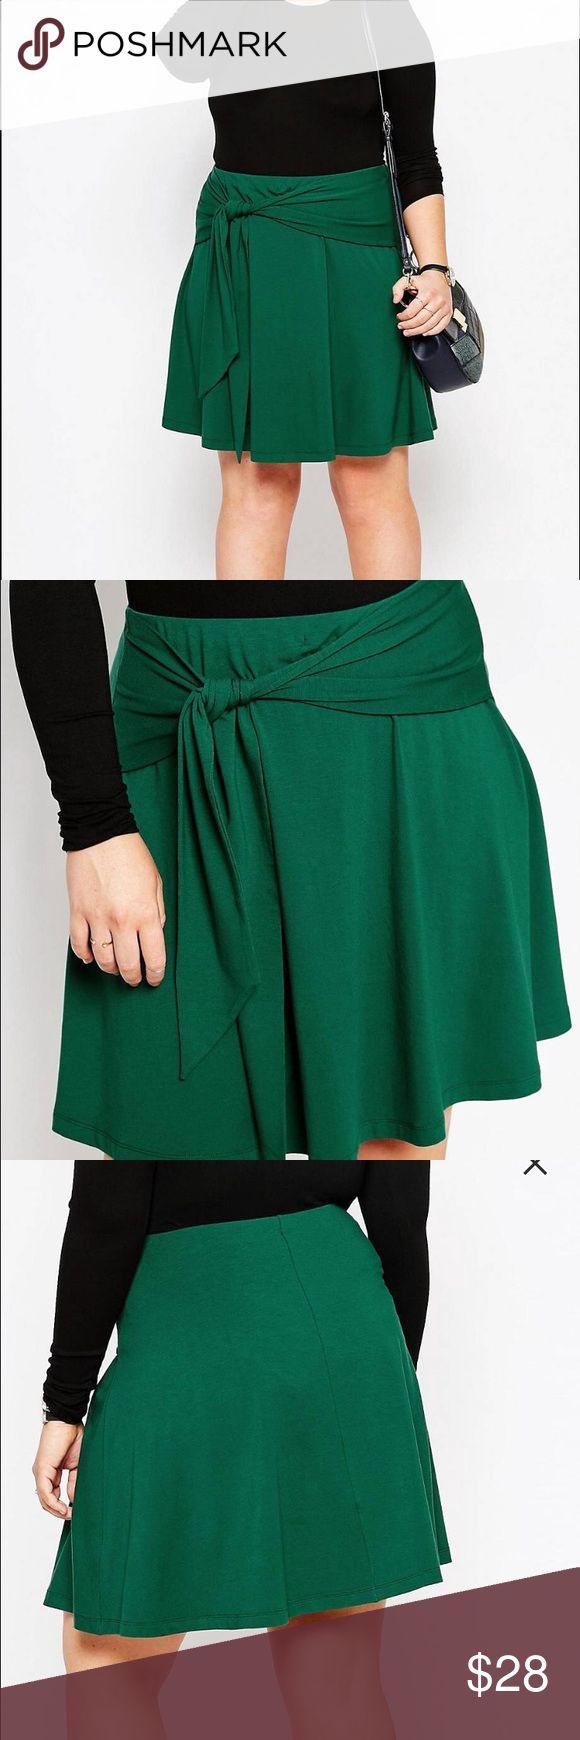 ASOS Curve skater skirt Brand new with tags green ASOS Curve skater skirt with tie front. Size US 16, 22 inches from waist to hem and a 17 inch waist. Has an elastic waist band, so PLENTY of stretch. ASOS Curve Skirts Circle & Skater